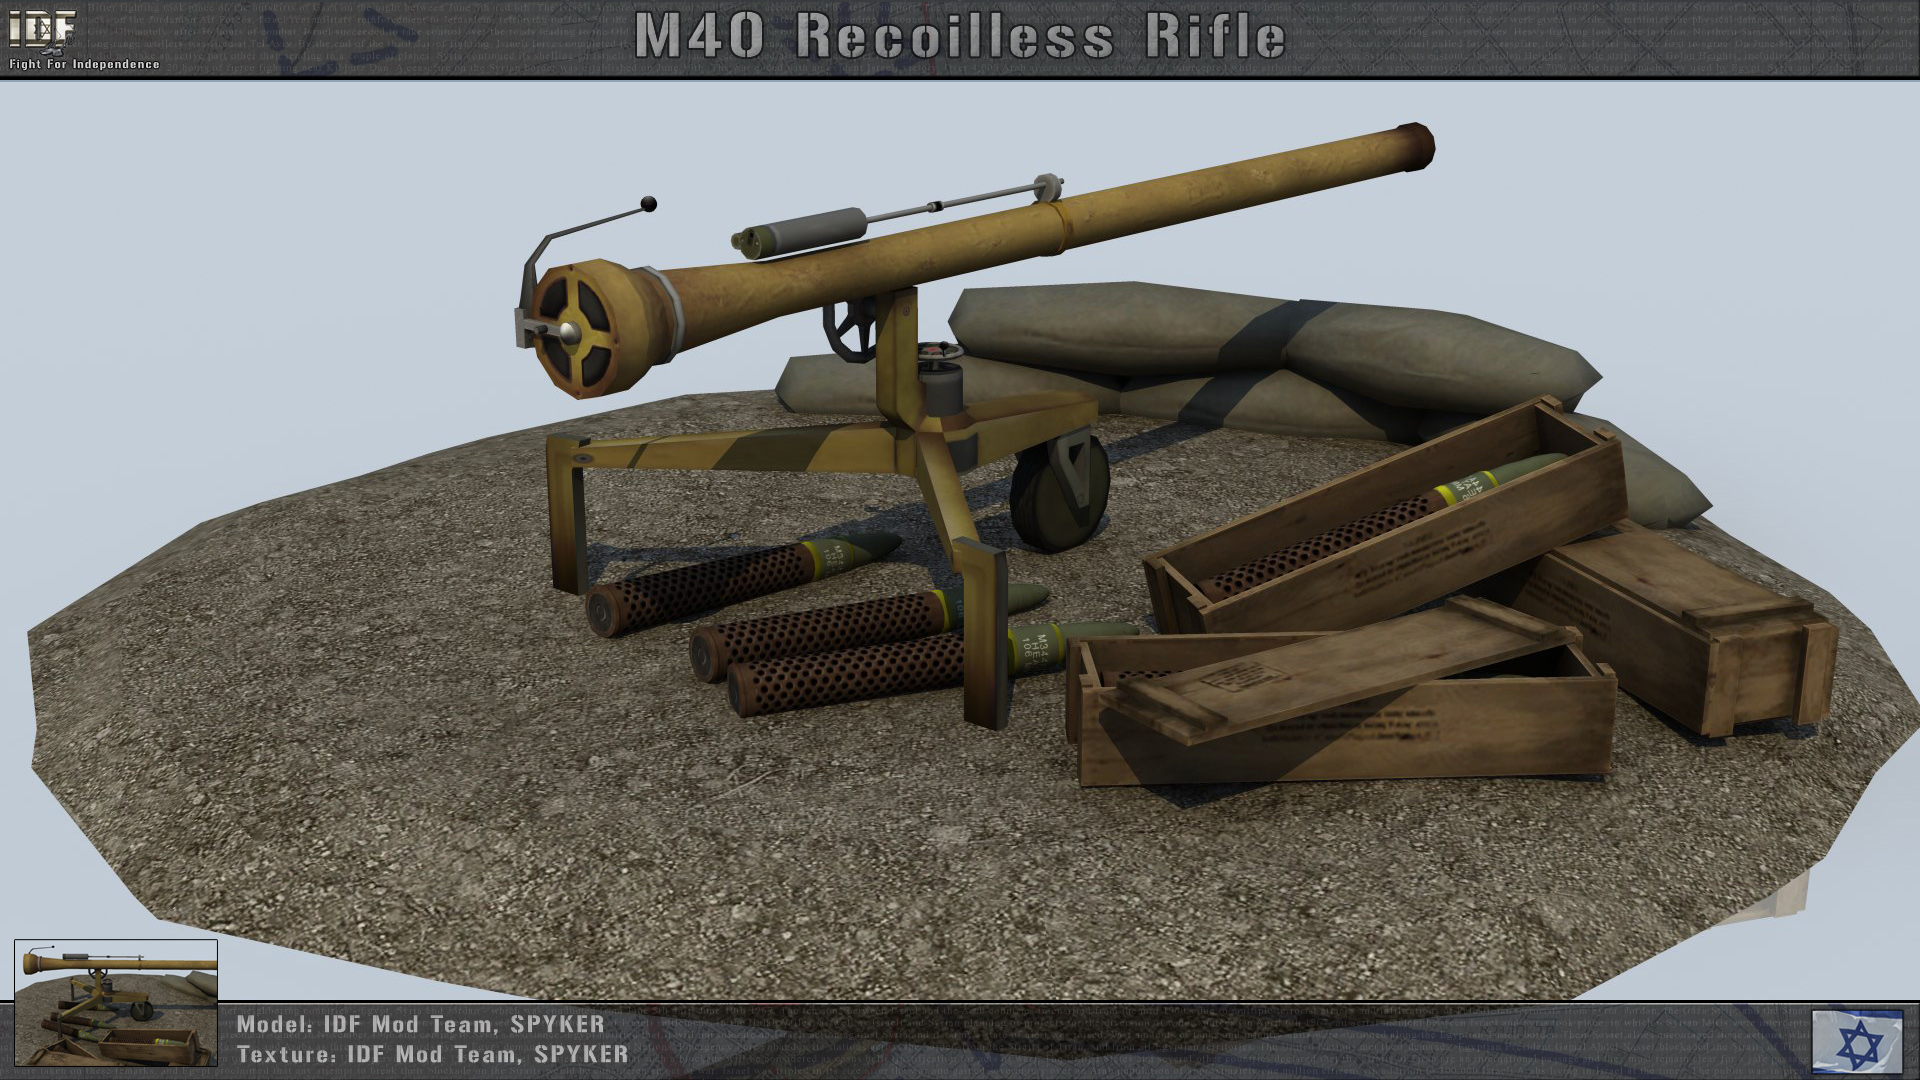 M40 Recoilless Rifle Image Idf Fight For Independence